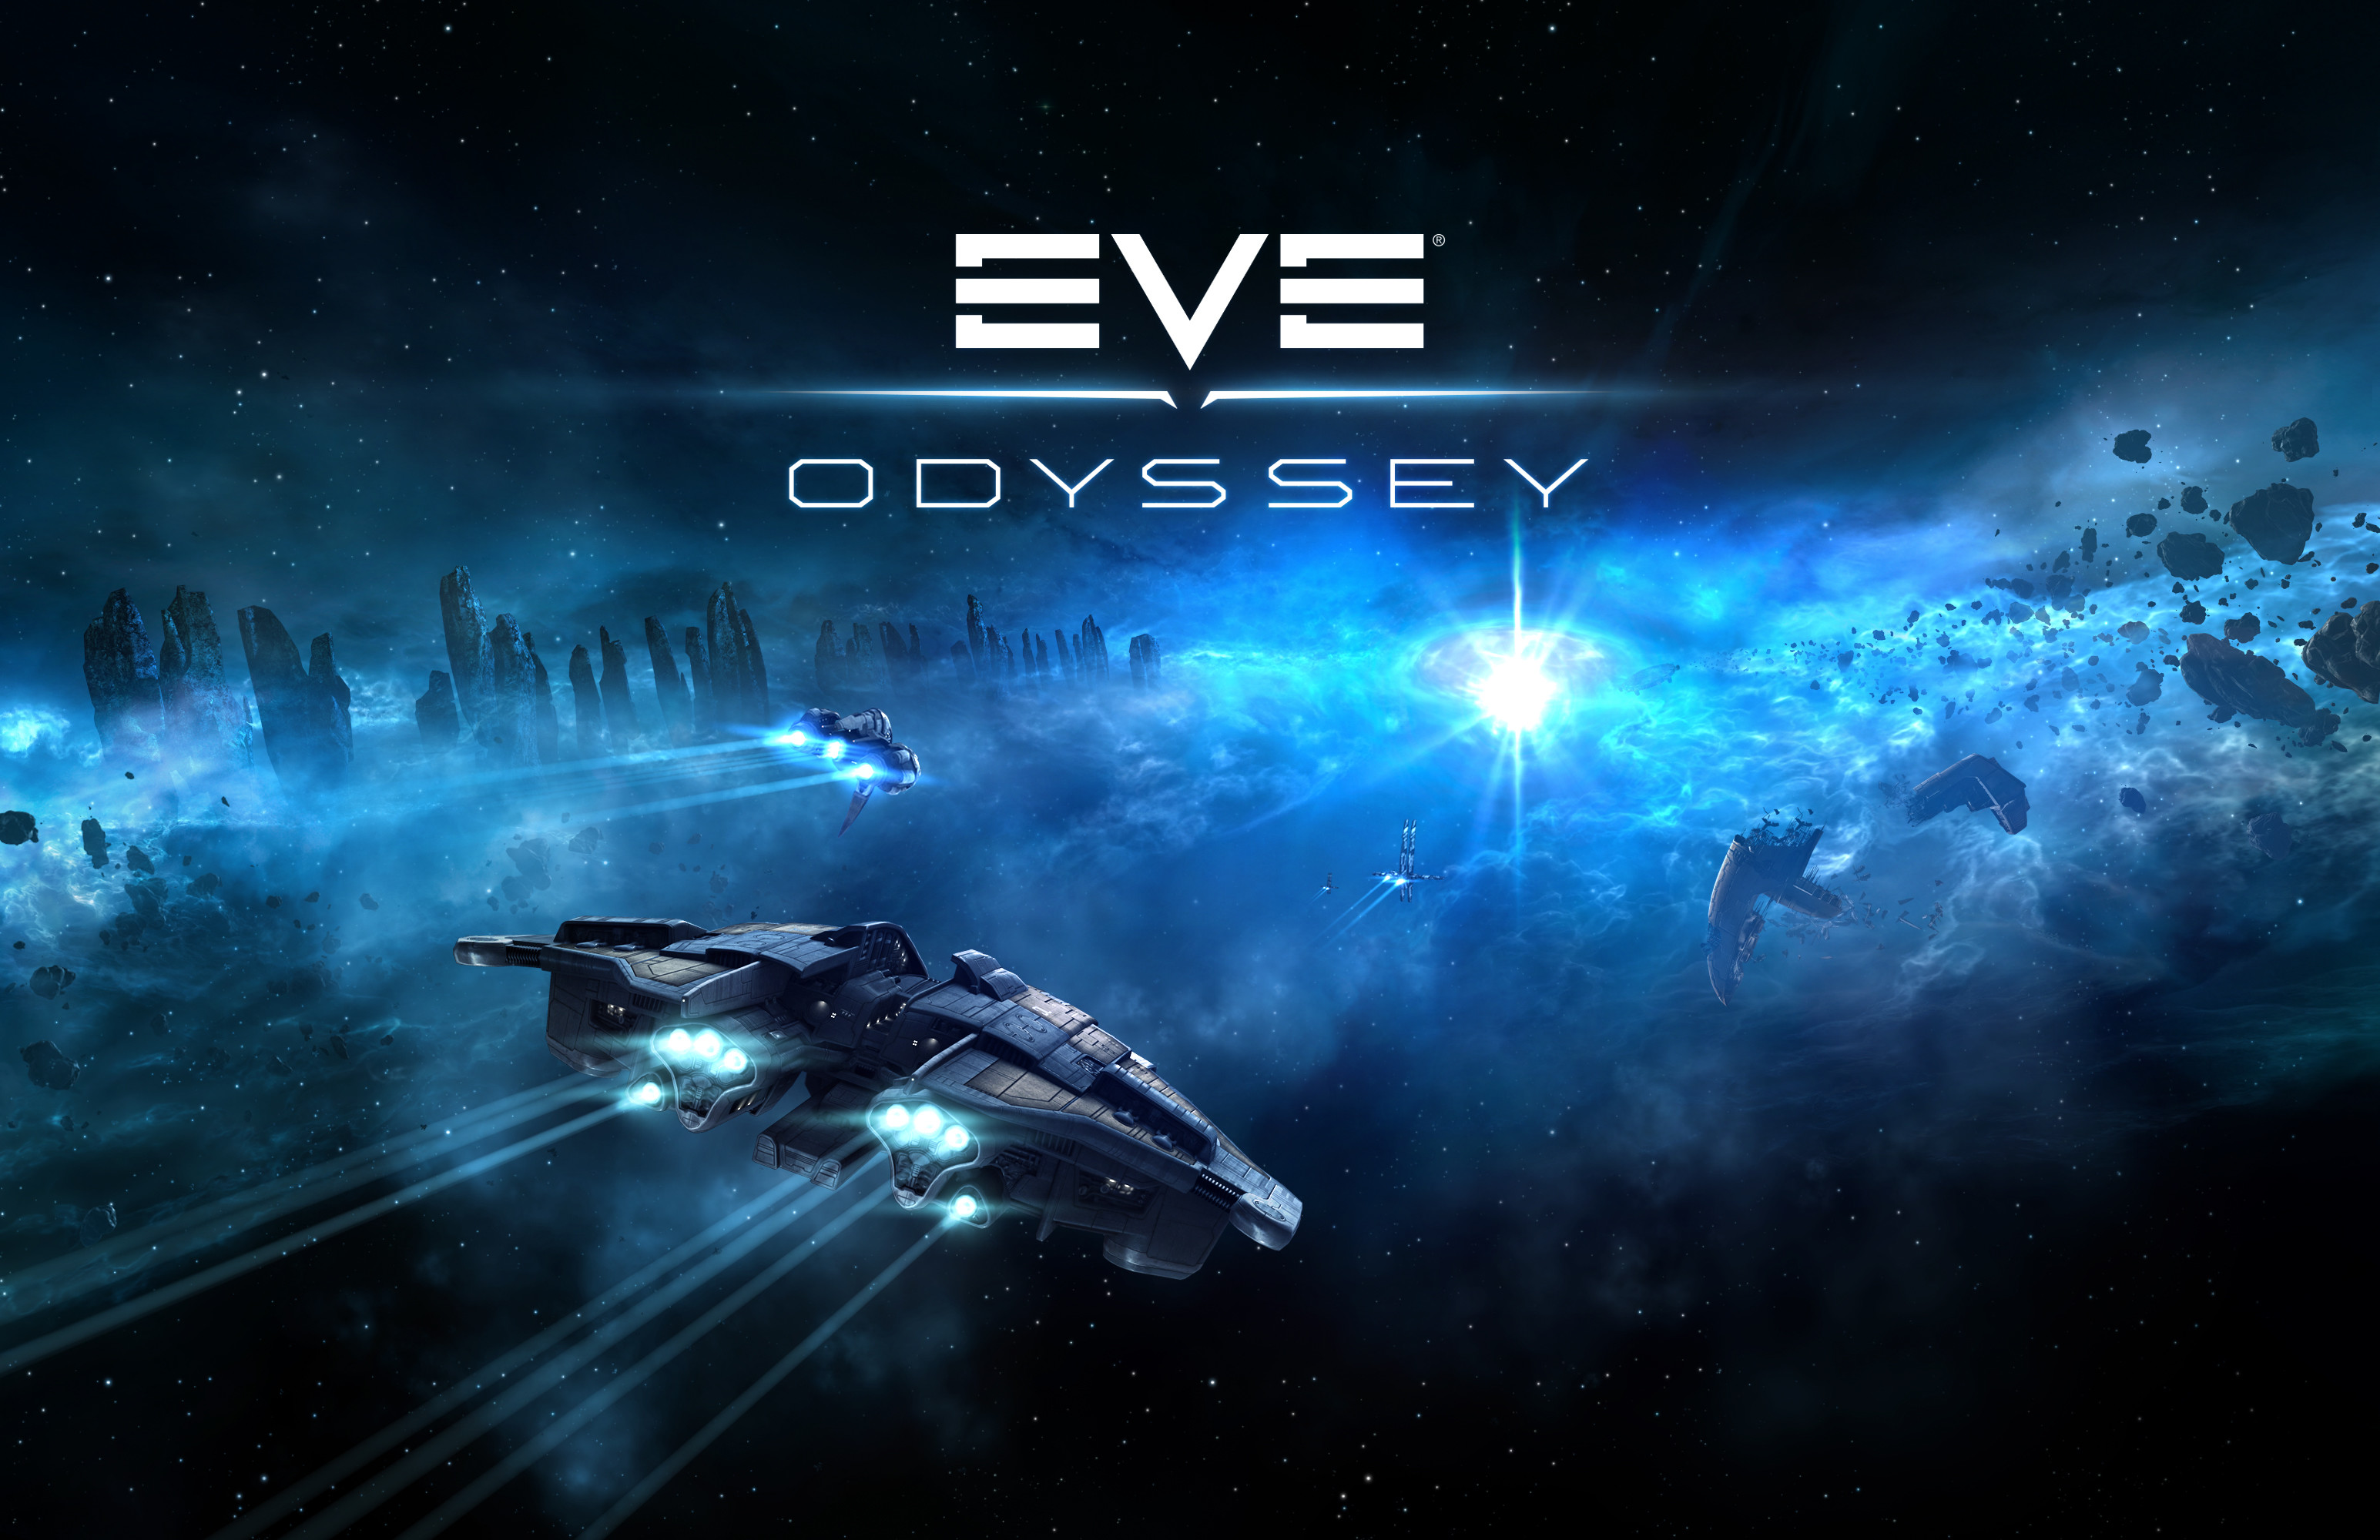 wallpaper.wiki-HD-Free-Wallpapers-Eve-Online-PIC-